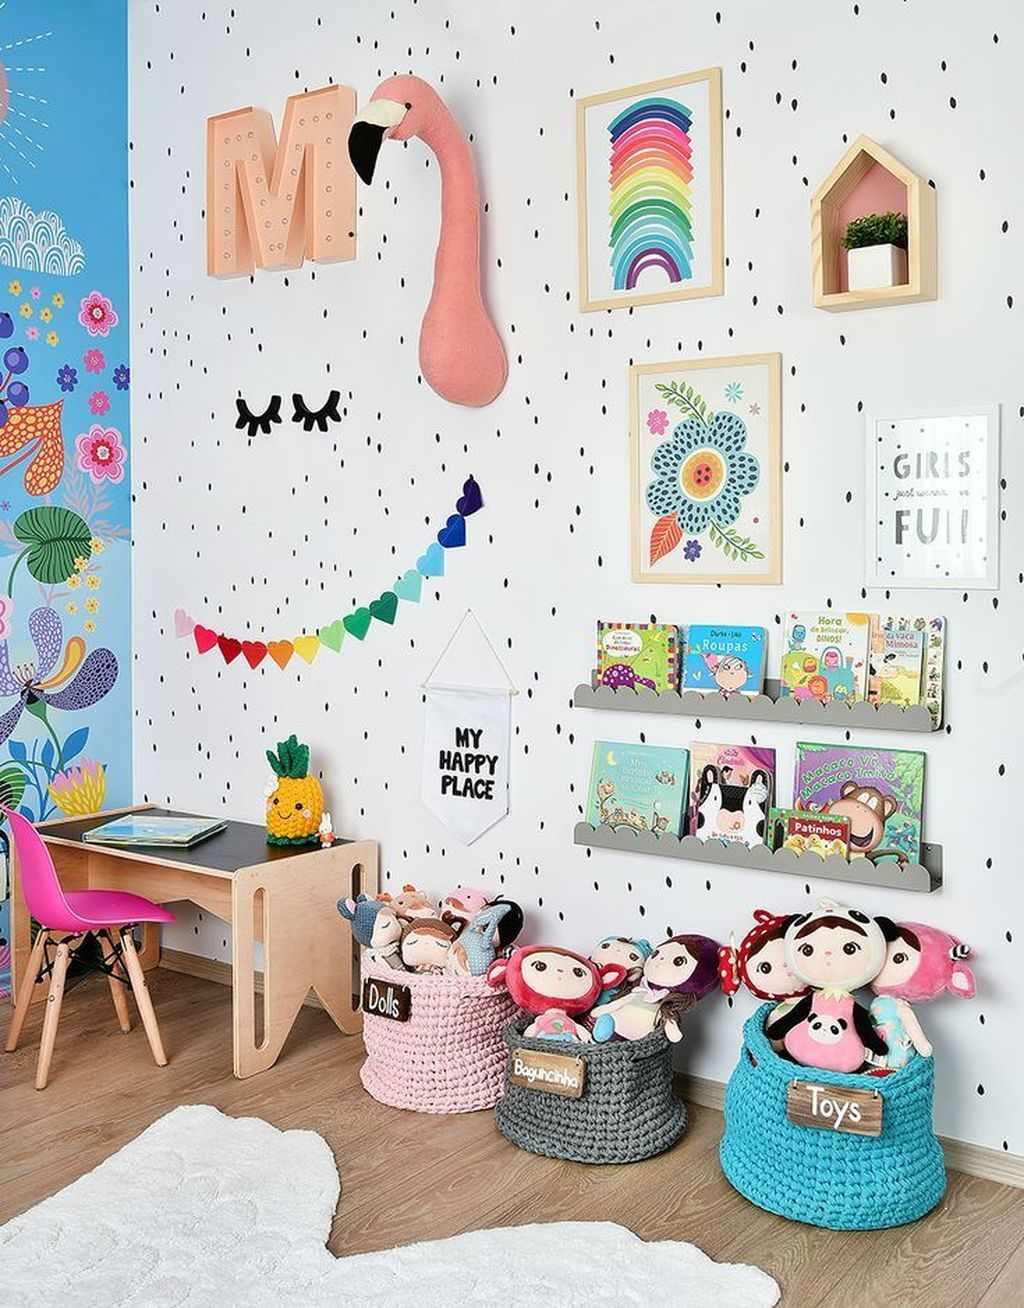 34 Extraordinary Kids Room Organization Design Ideas On A Budget images